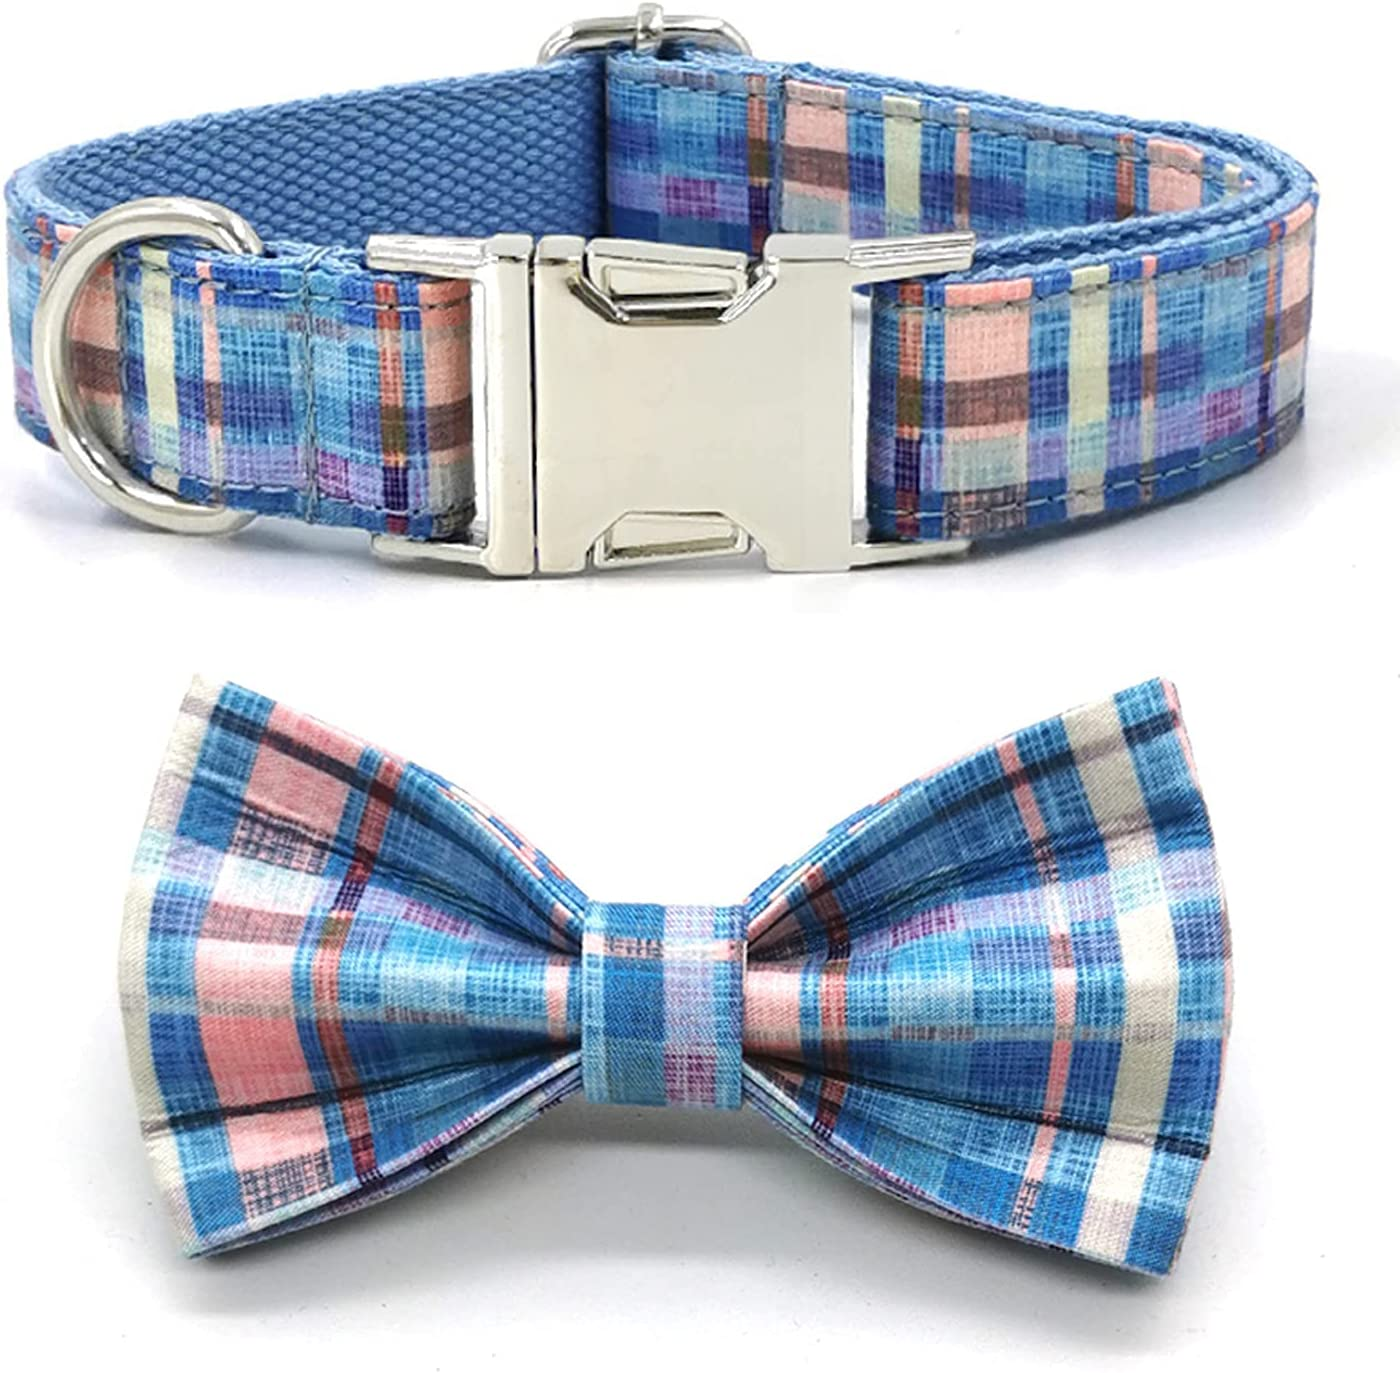 Free shipping New Dog Collar for Large Medium Small Dogs A Tie A surprise price is realized Bow with Heavy Duty